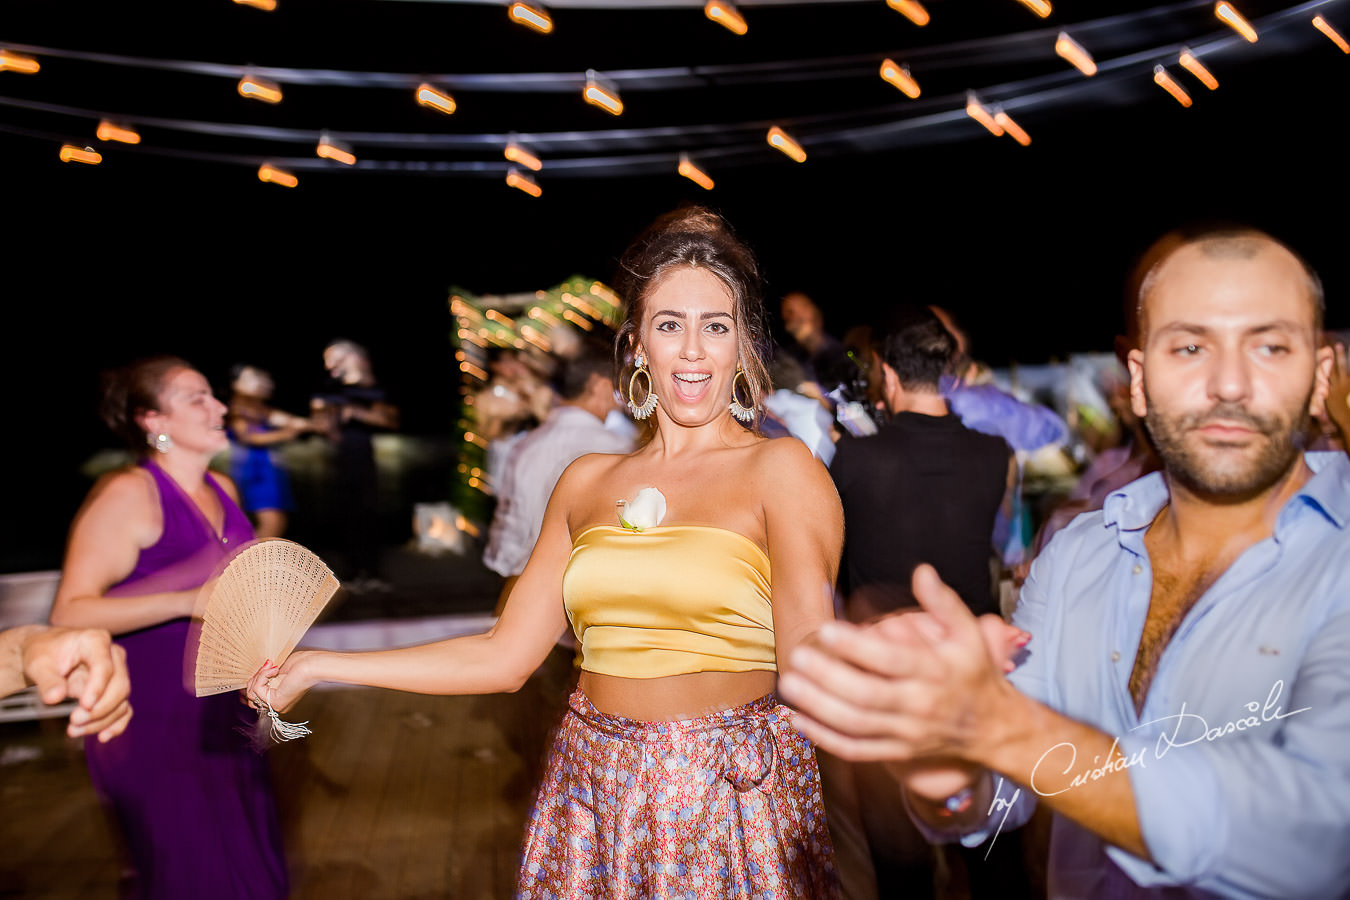 Guests dancing moments captured during a wedding photography at the Lighthouse Limassol, by Cyprus Photographer Cristian Dascalu.